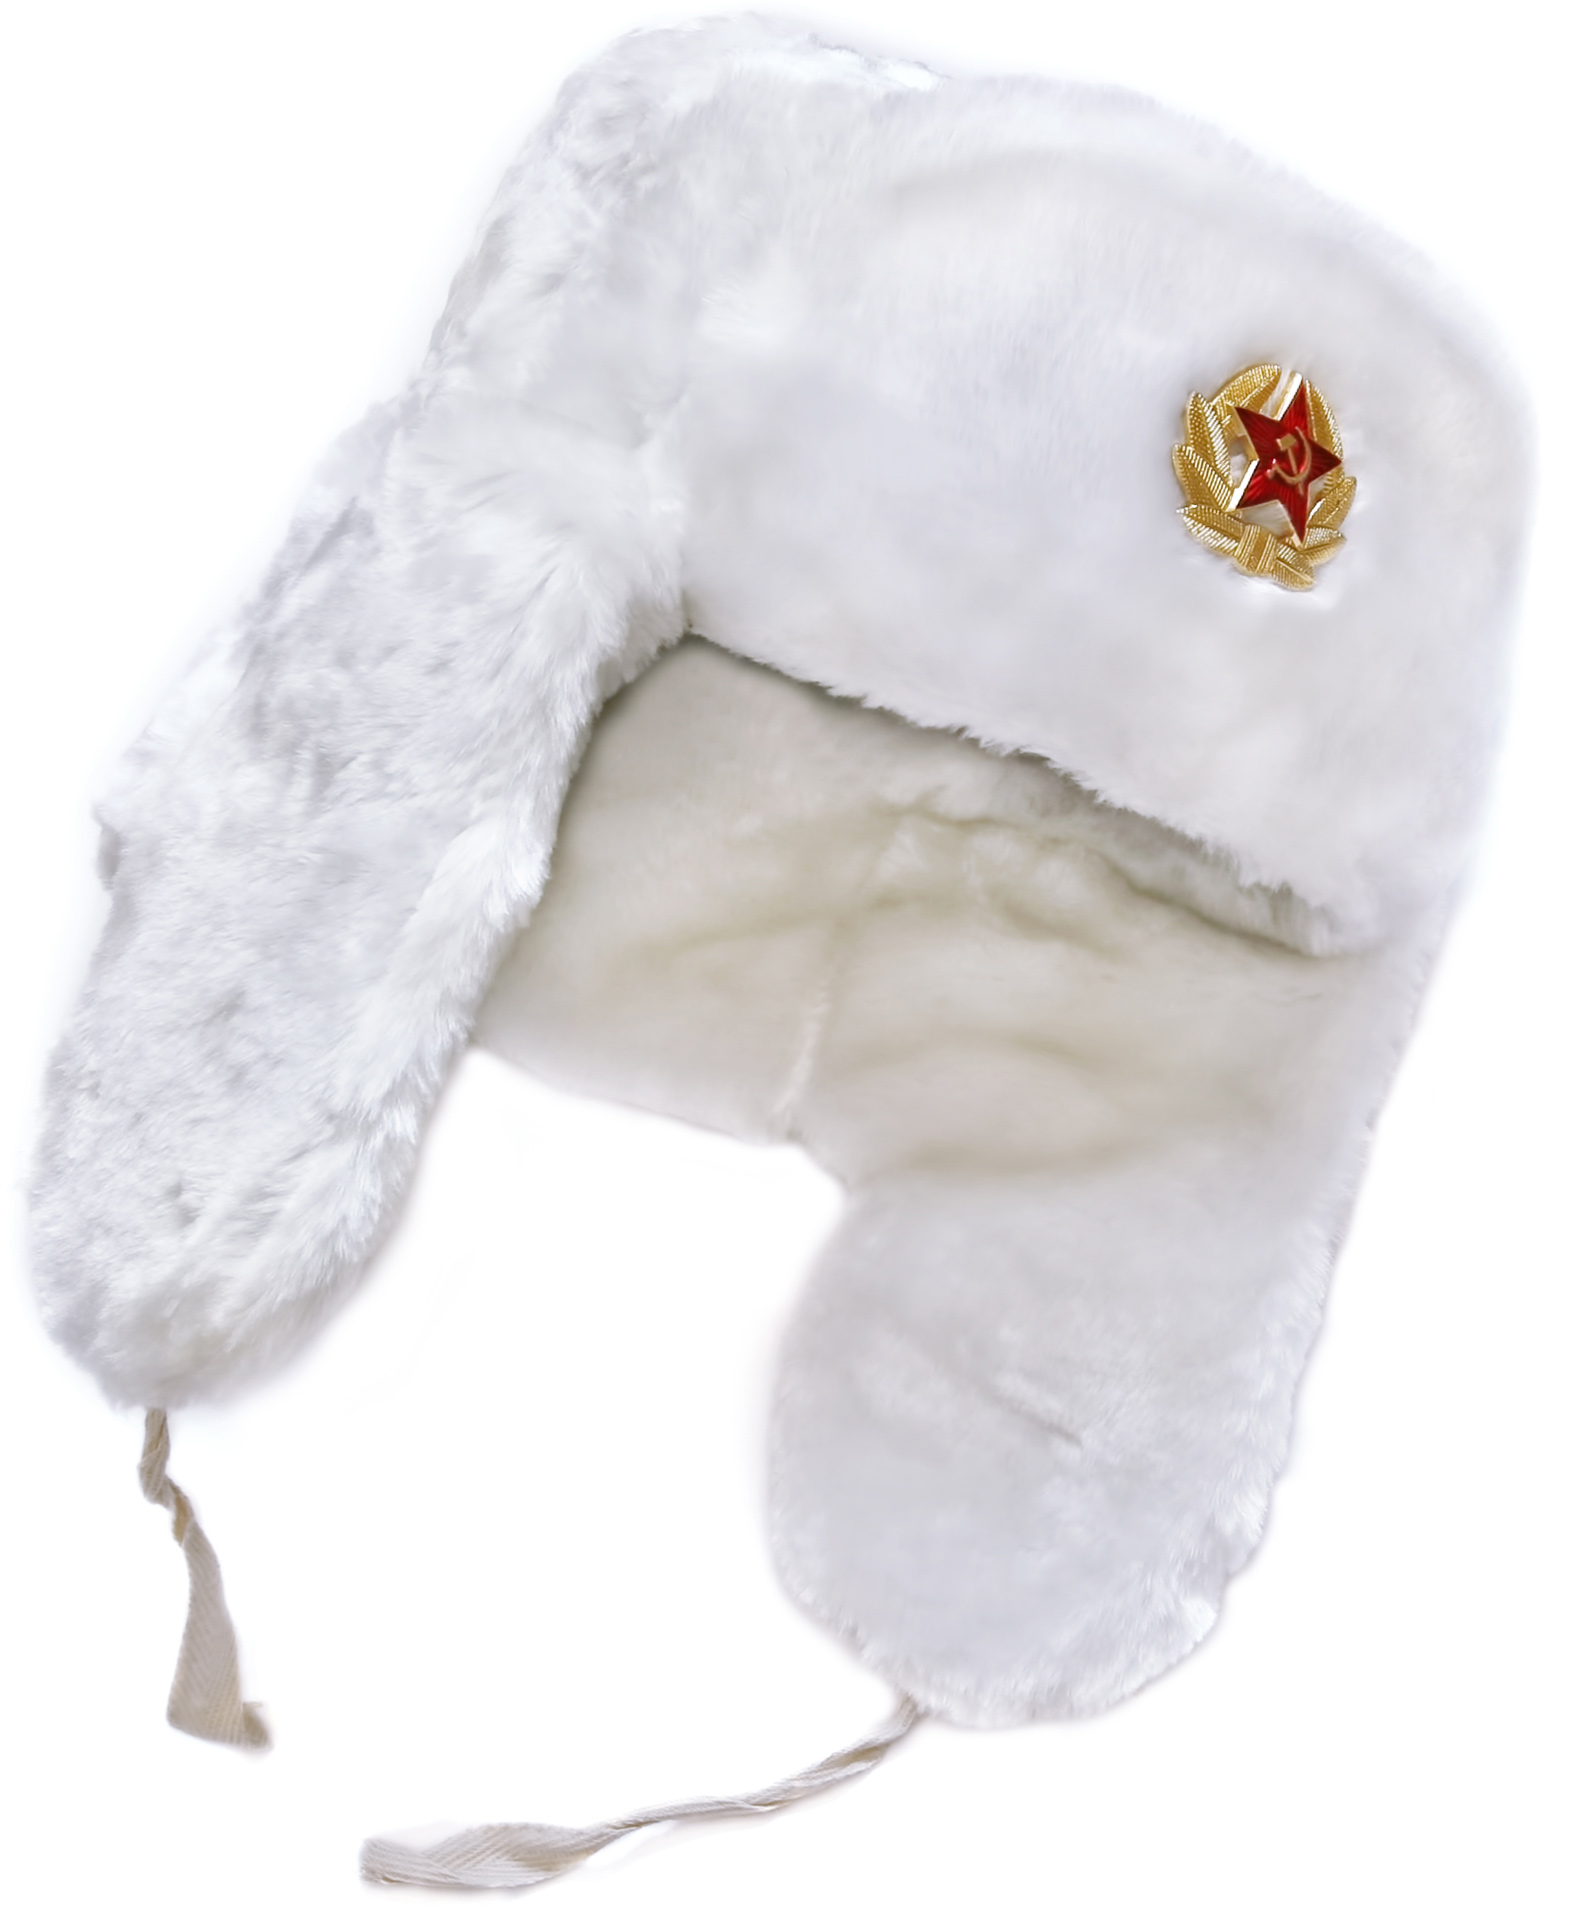 4a70669e77c13 White winter hat earflaps pulled down